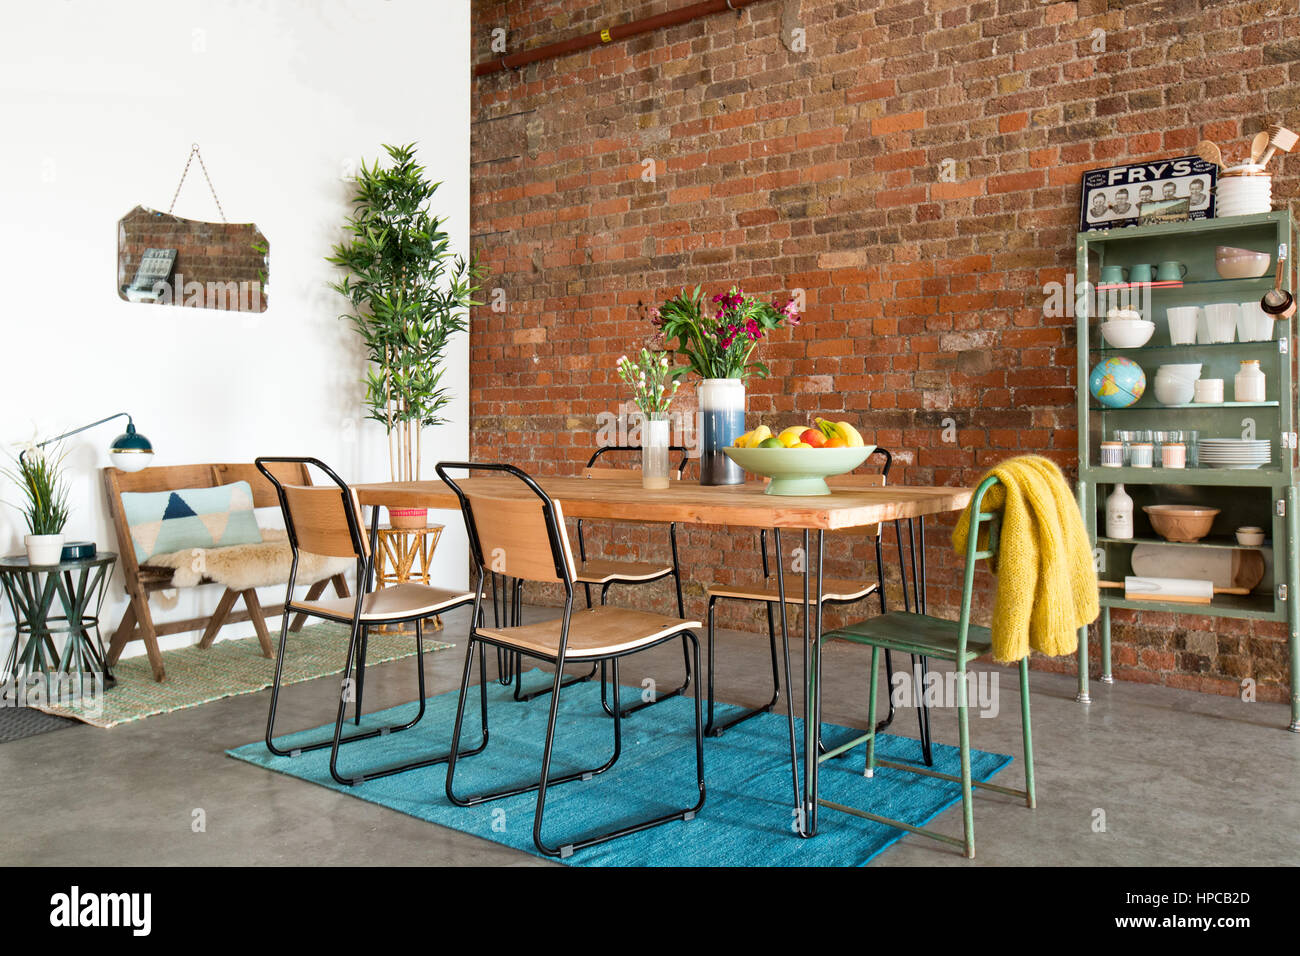 Dining Table And Chairs In A Large Urban Living Space With Exposed Stock Photo Alamy